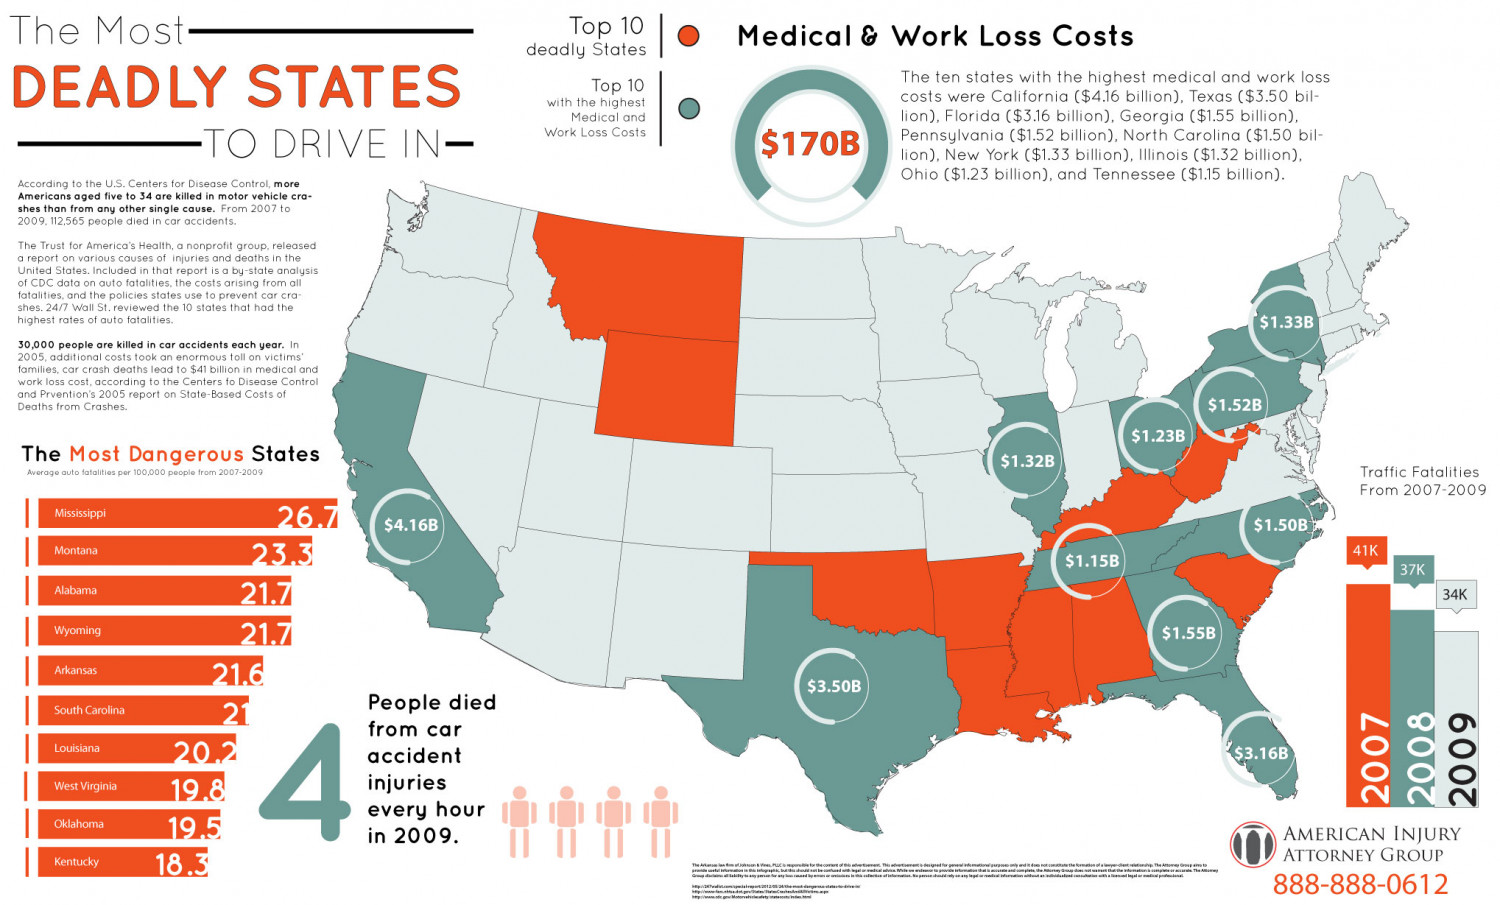 The Most Deadly States to drive in Infographic